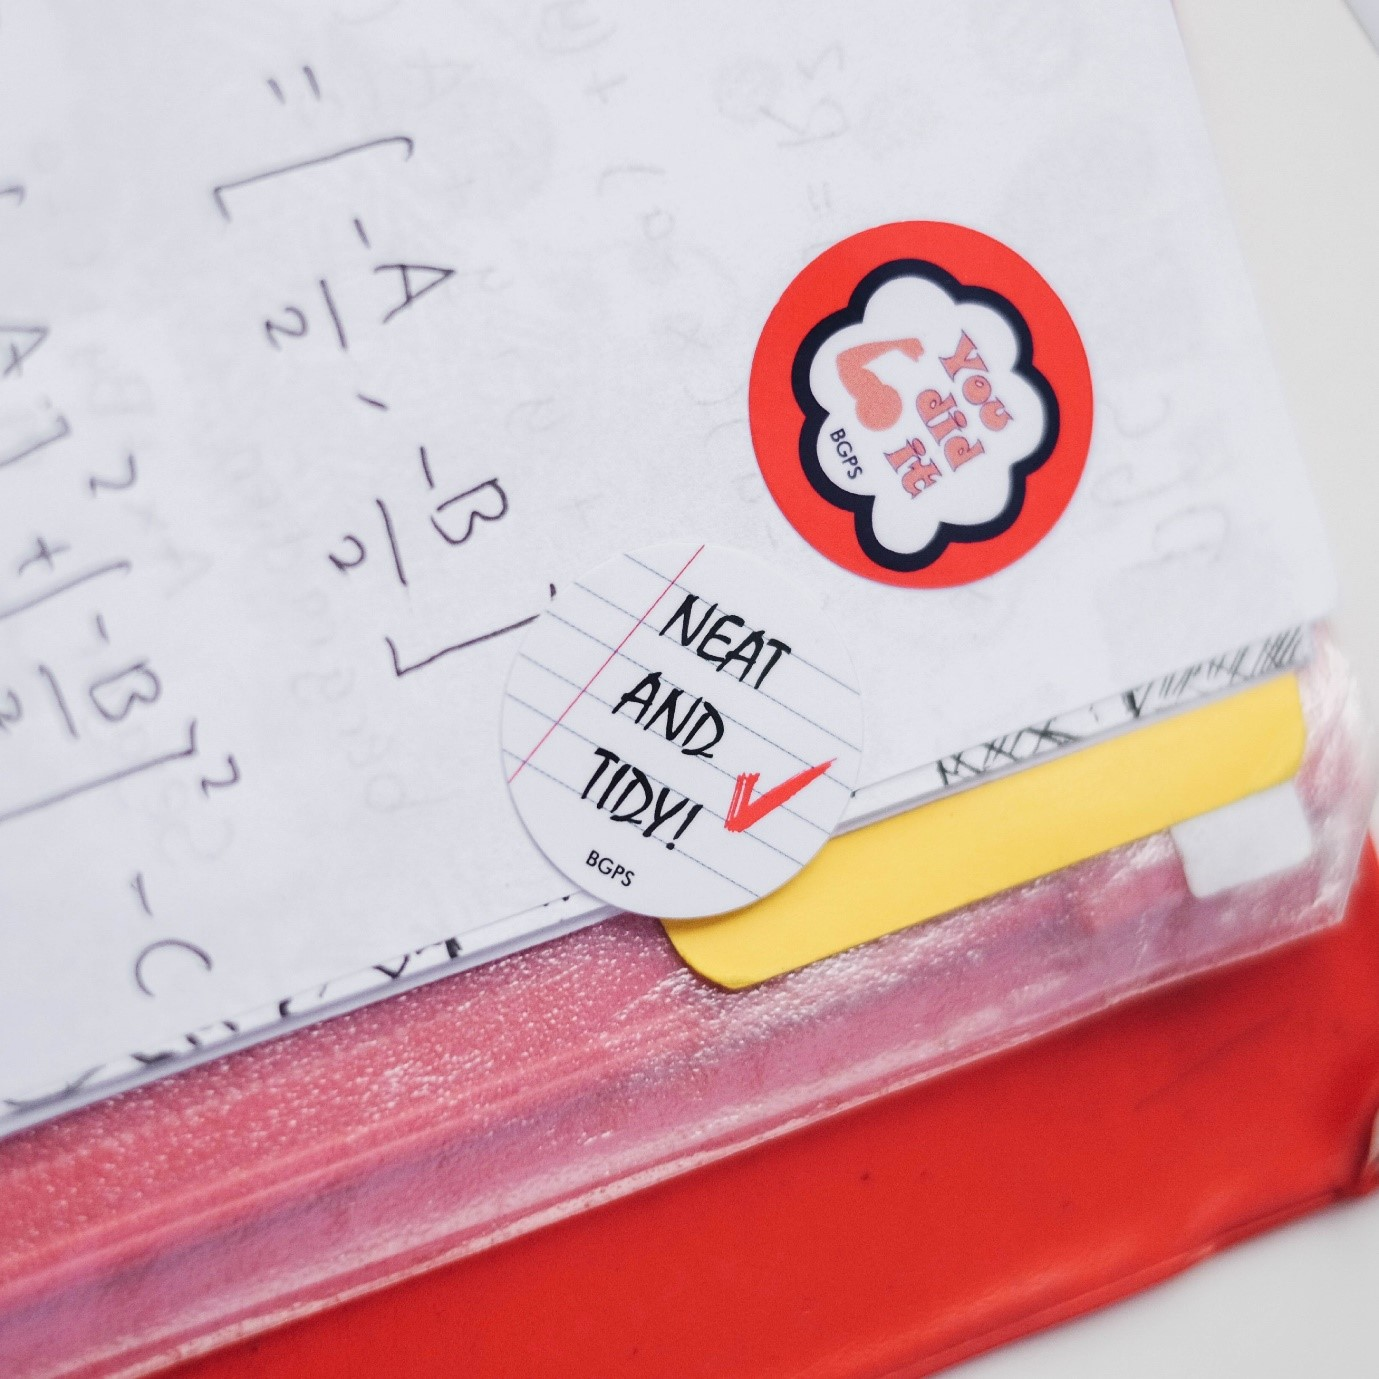 Example 1: Classroom Appraisal and Grading Stickers